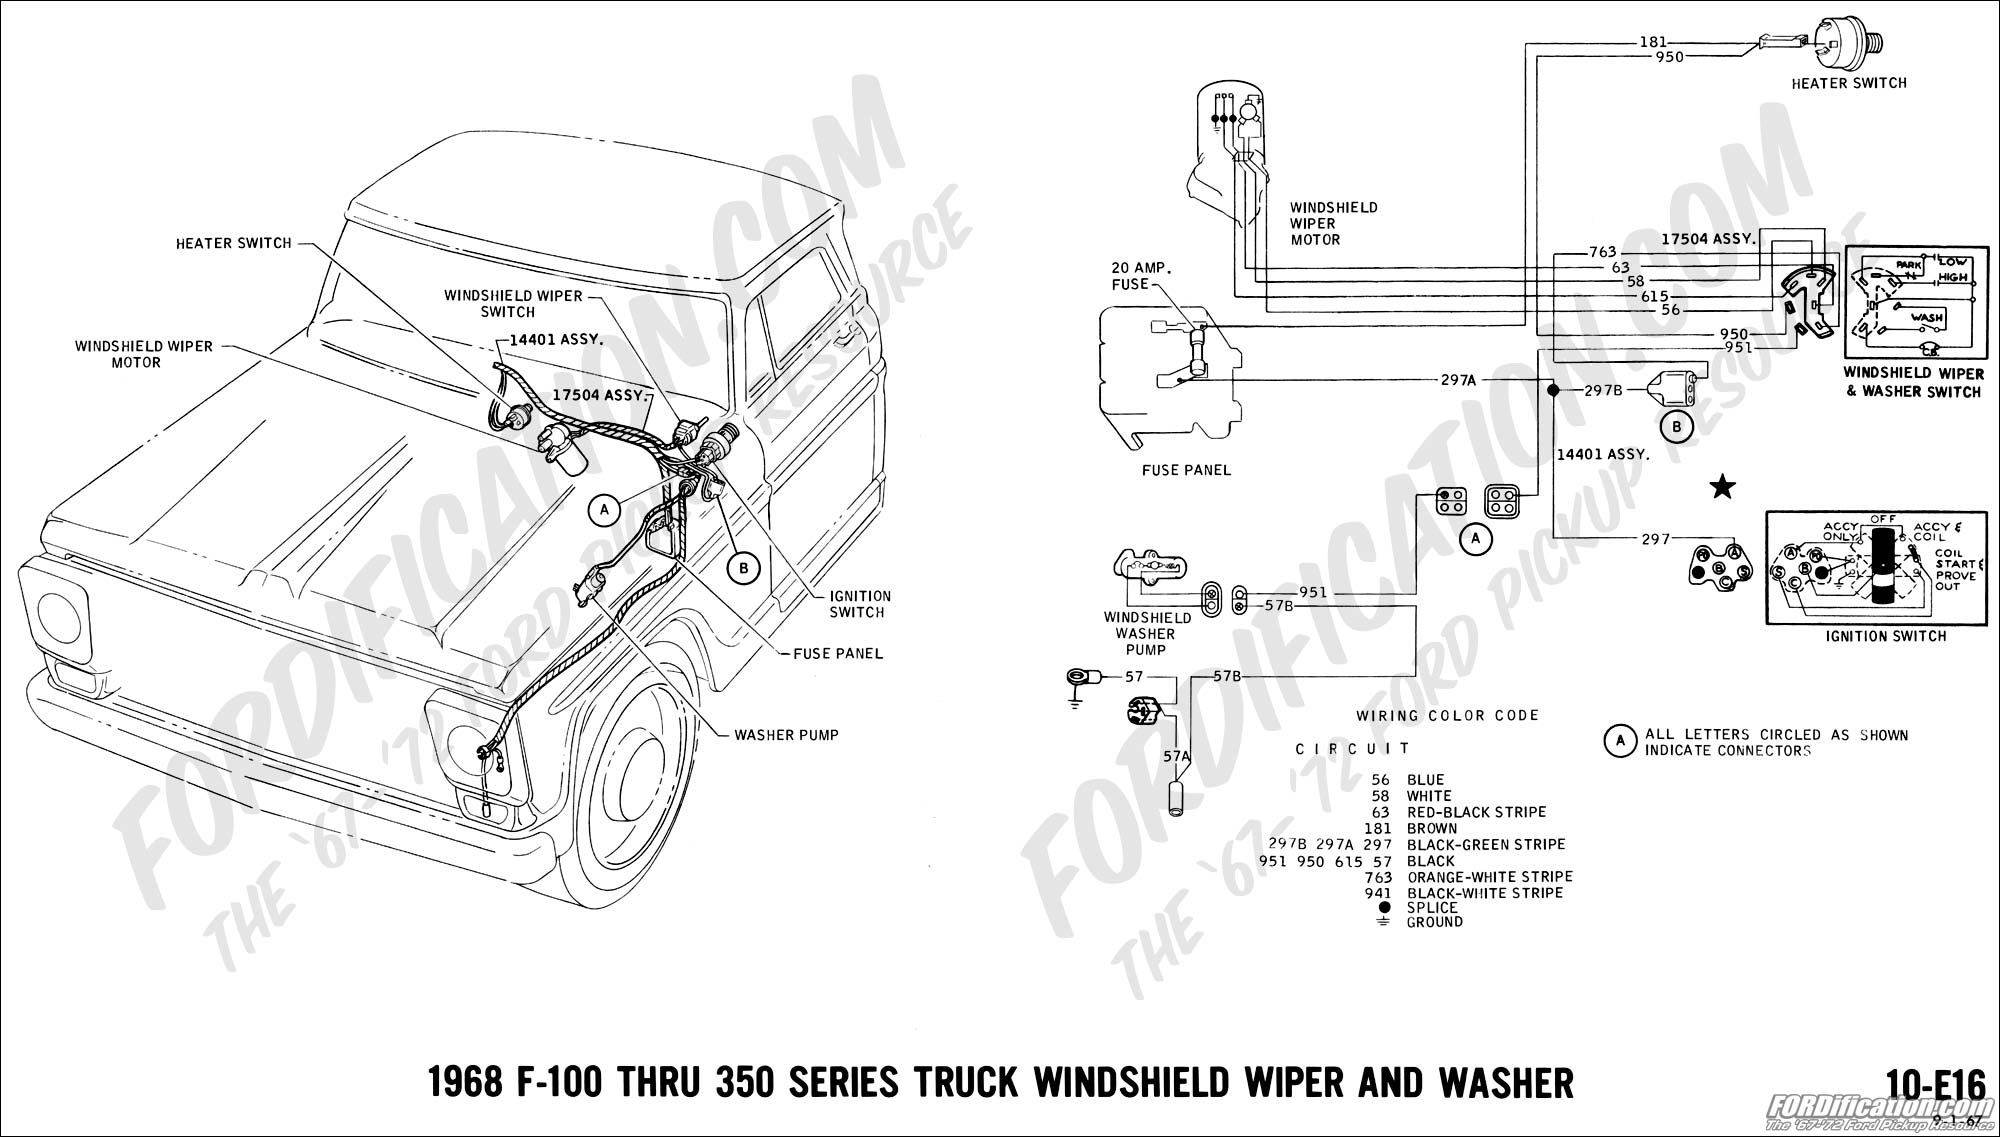 67 F100 Fuse Box Wiring Library 68 Vw Beetle Flasher Diagram Free Download 1968 F 100 Thru 350 Windshield Wiper And Washer